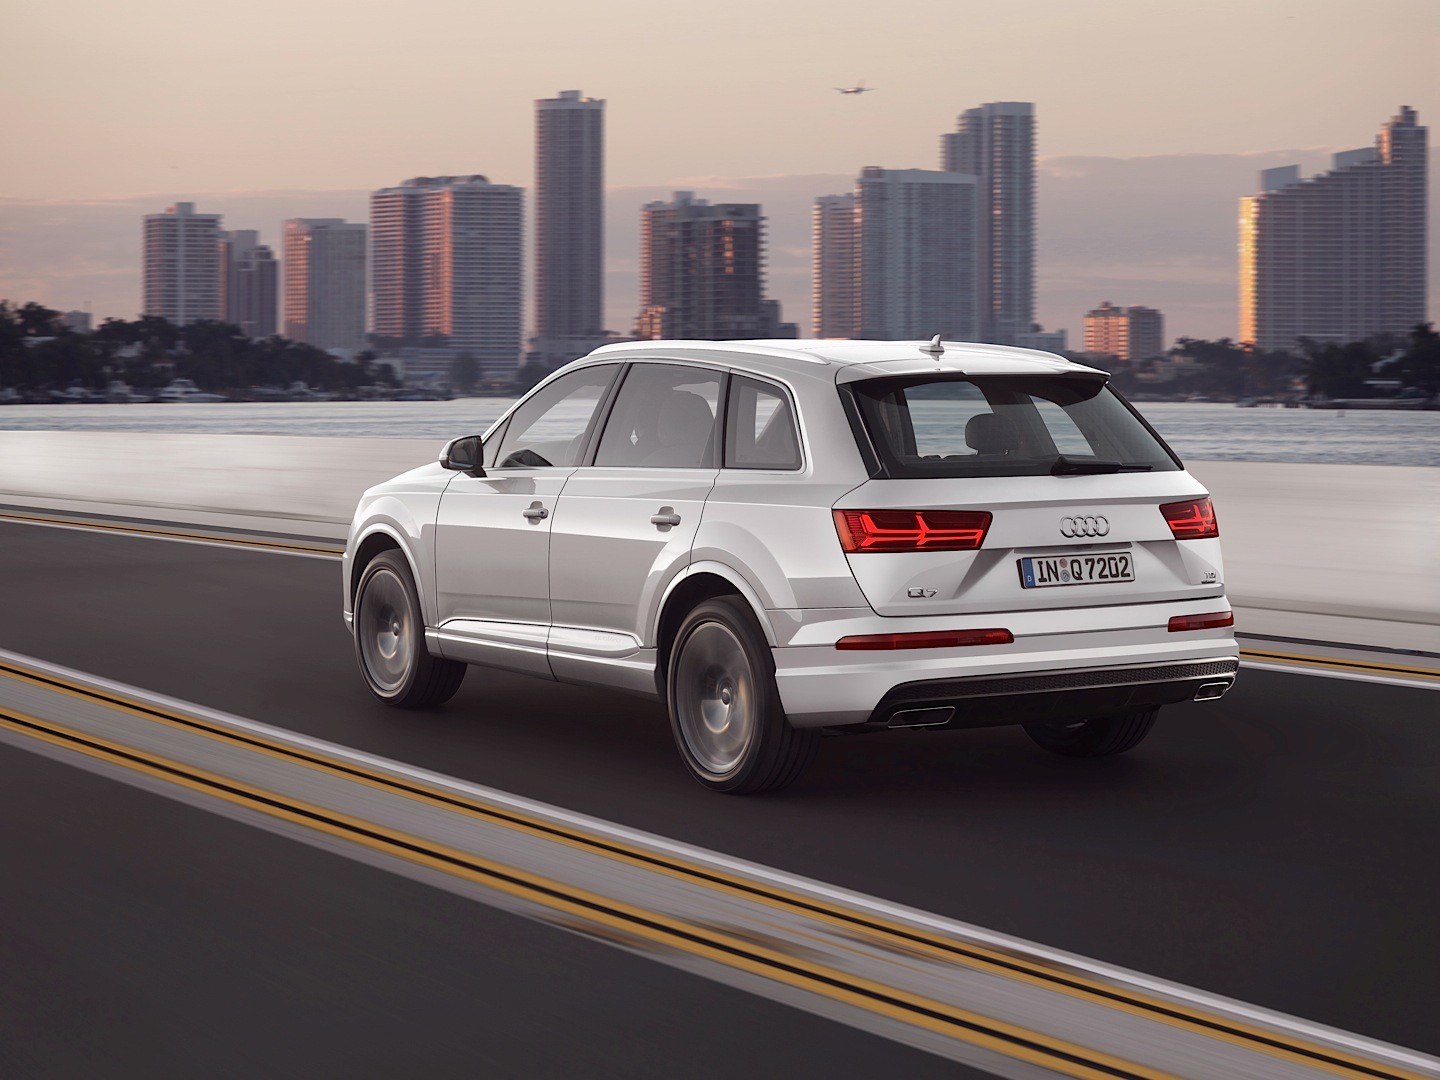 Audi Shows 2015 Q7 in New Tofana White Color, Reveals Obsession with Mountains - autoevolution